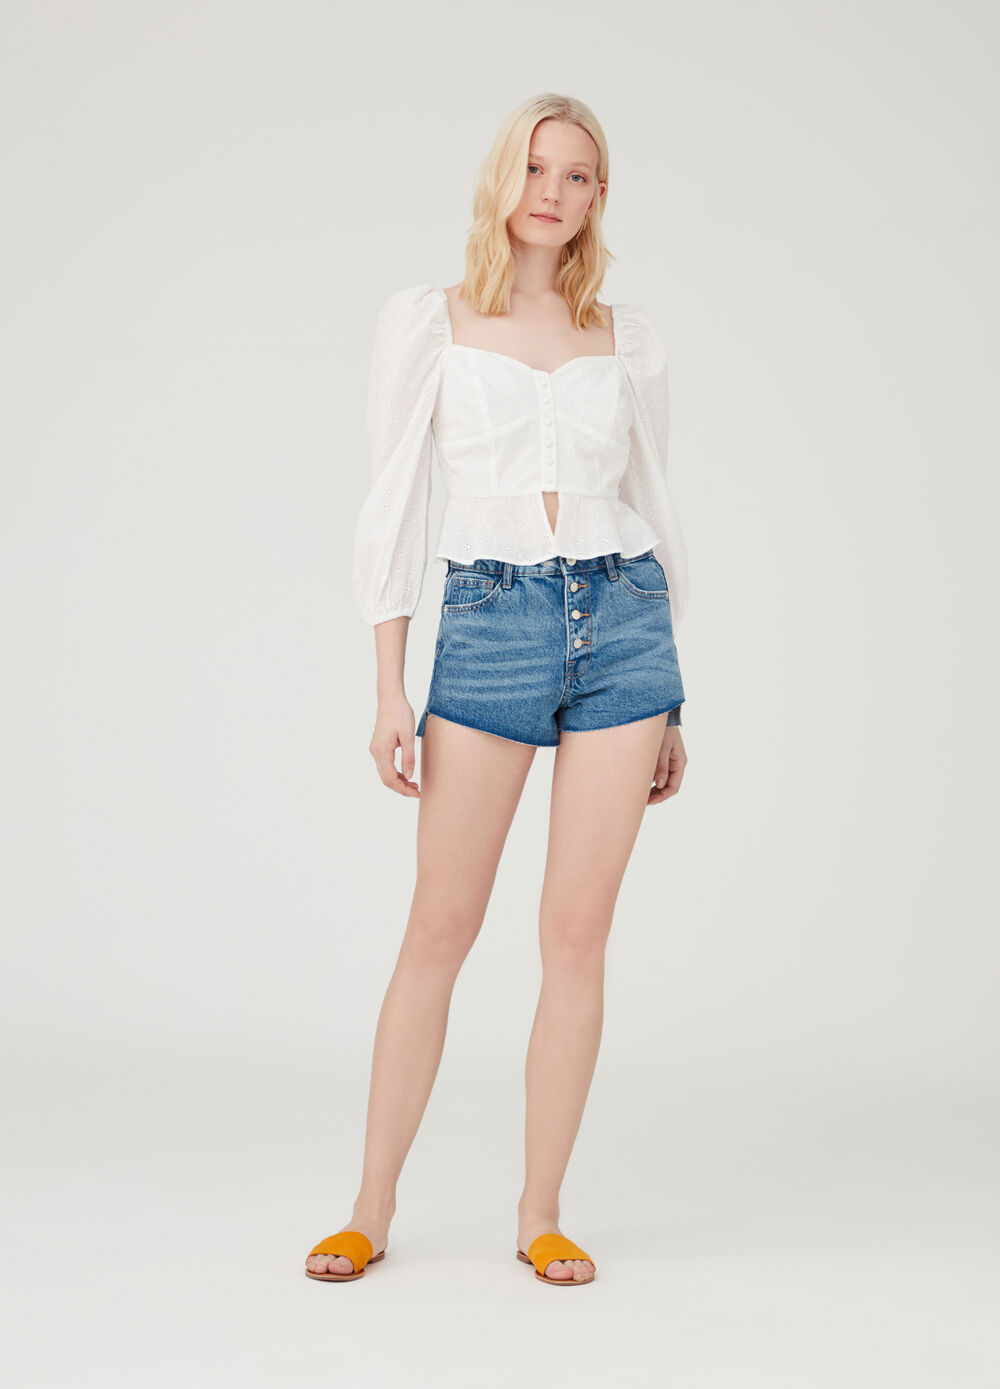 Faded denim shorts with high waist and pockets